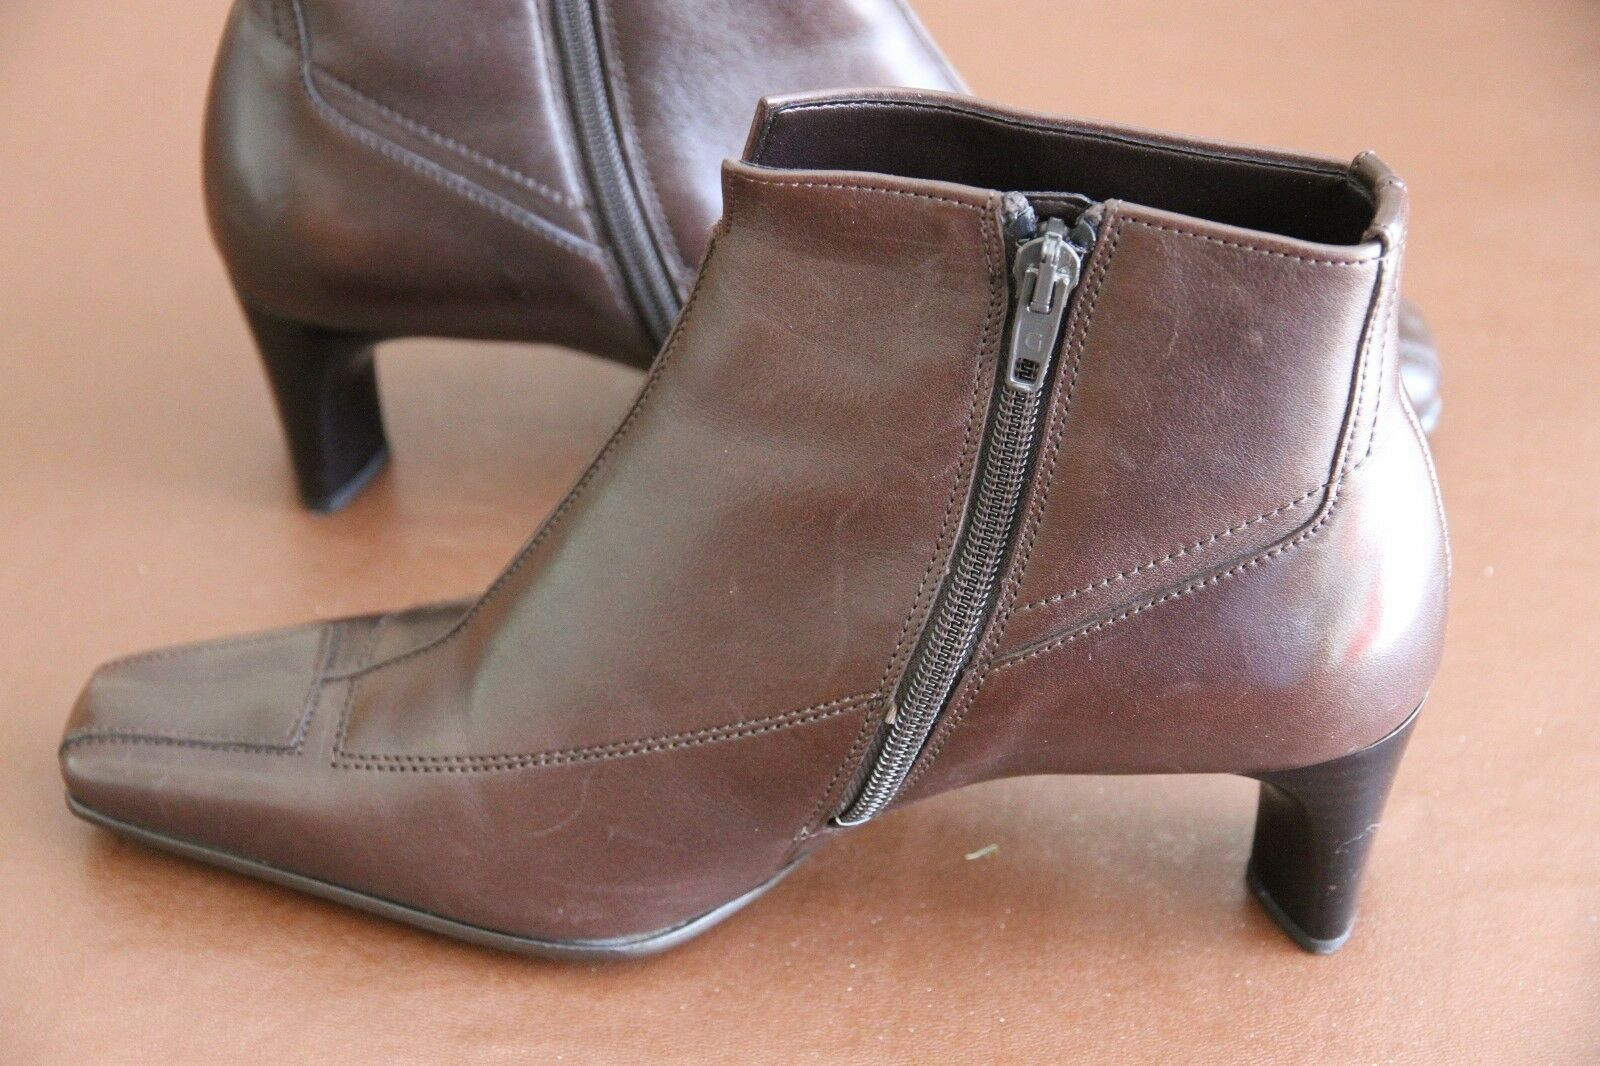 New Gabor Brown Leather Heeled zipped Ankle Boots 5 square chisel Toe size 5 Boots 5cee1f